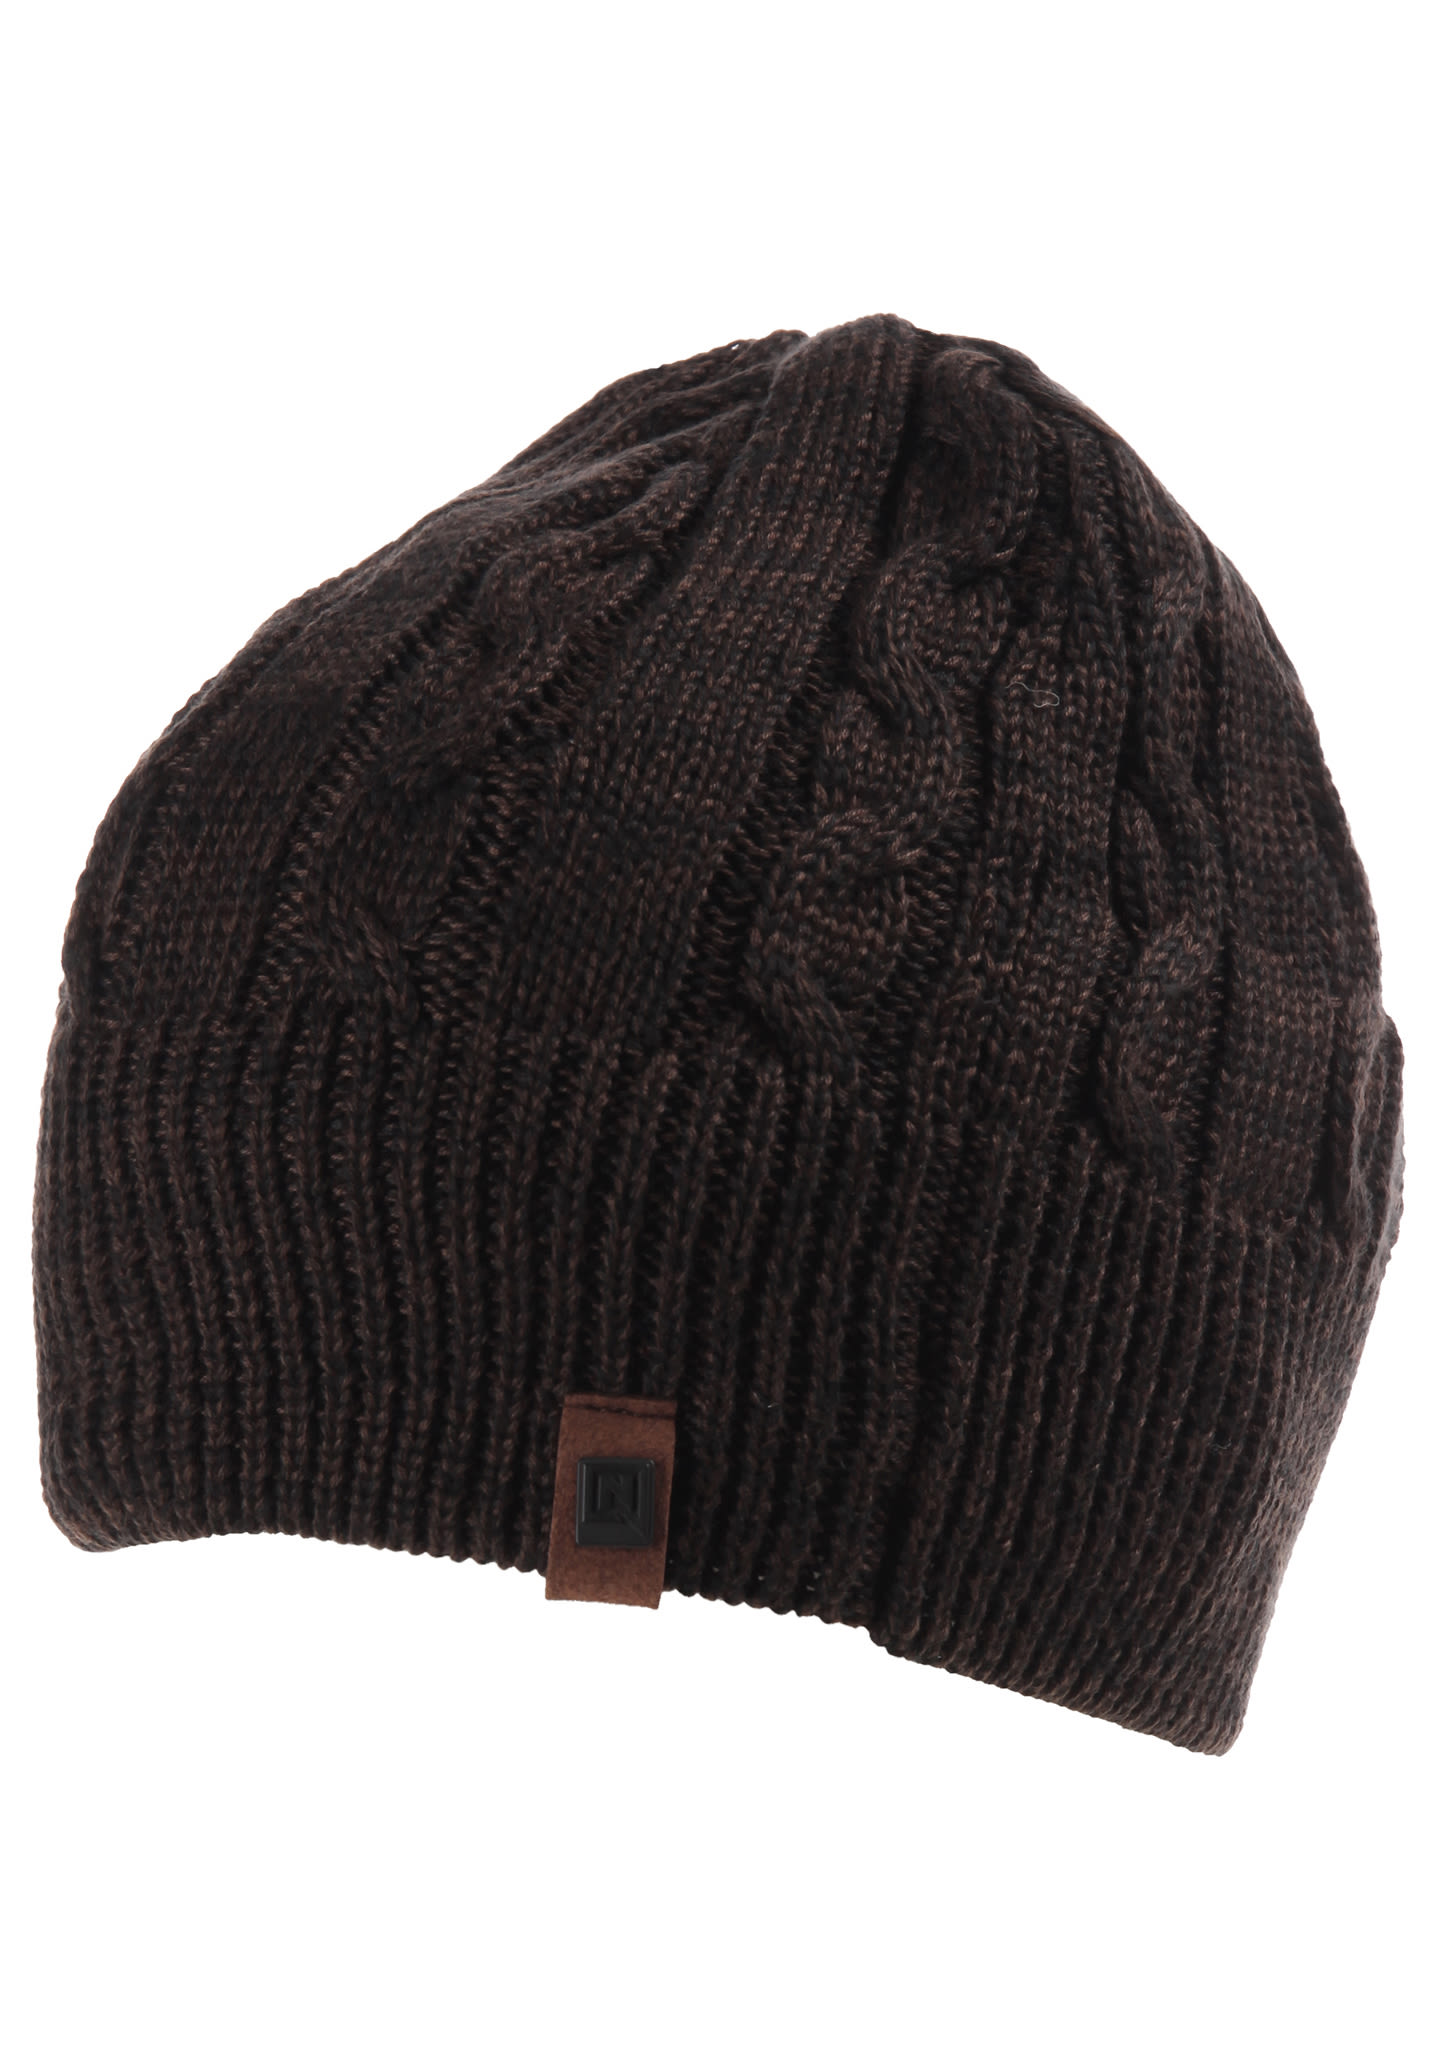 0fb98715bdd NITRO Sierra - Beanie for Women - Black - Planet Sports